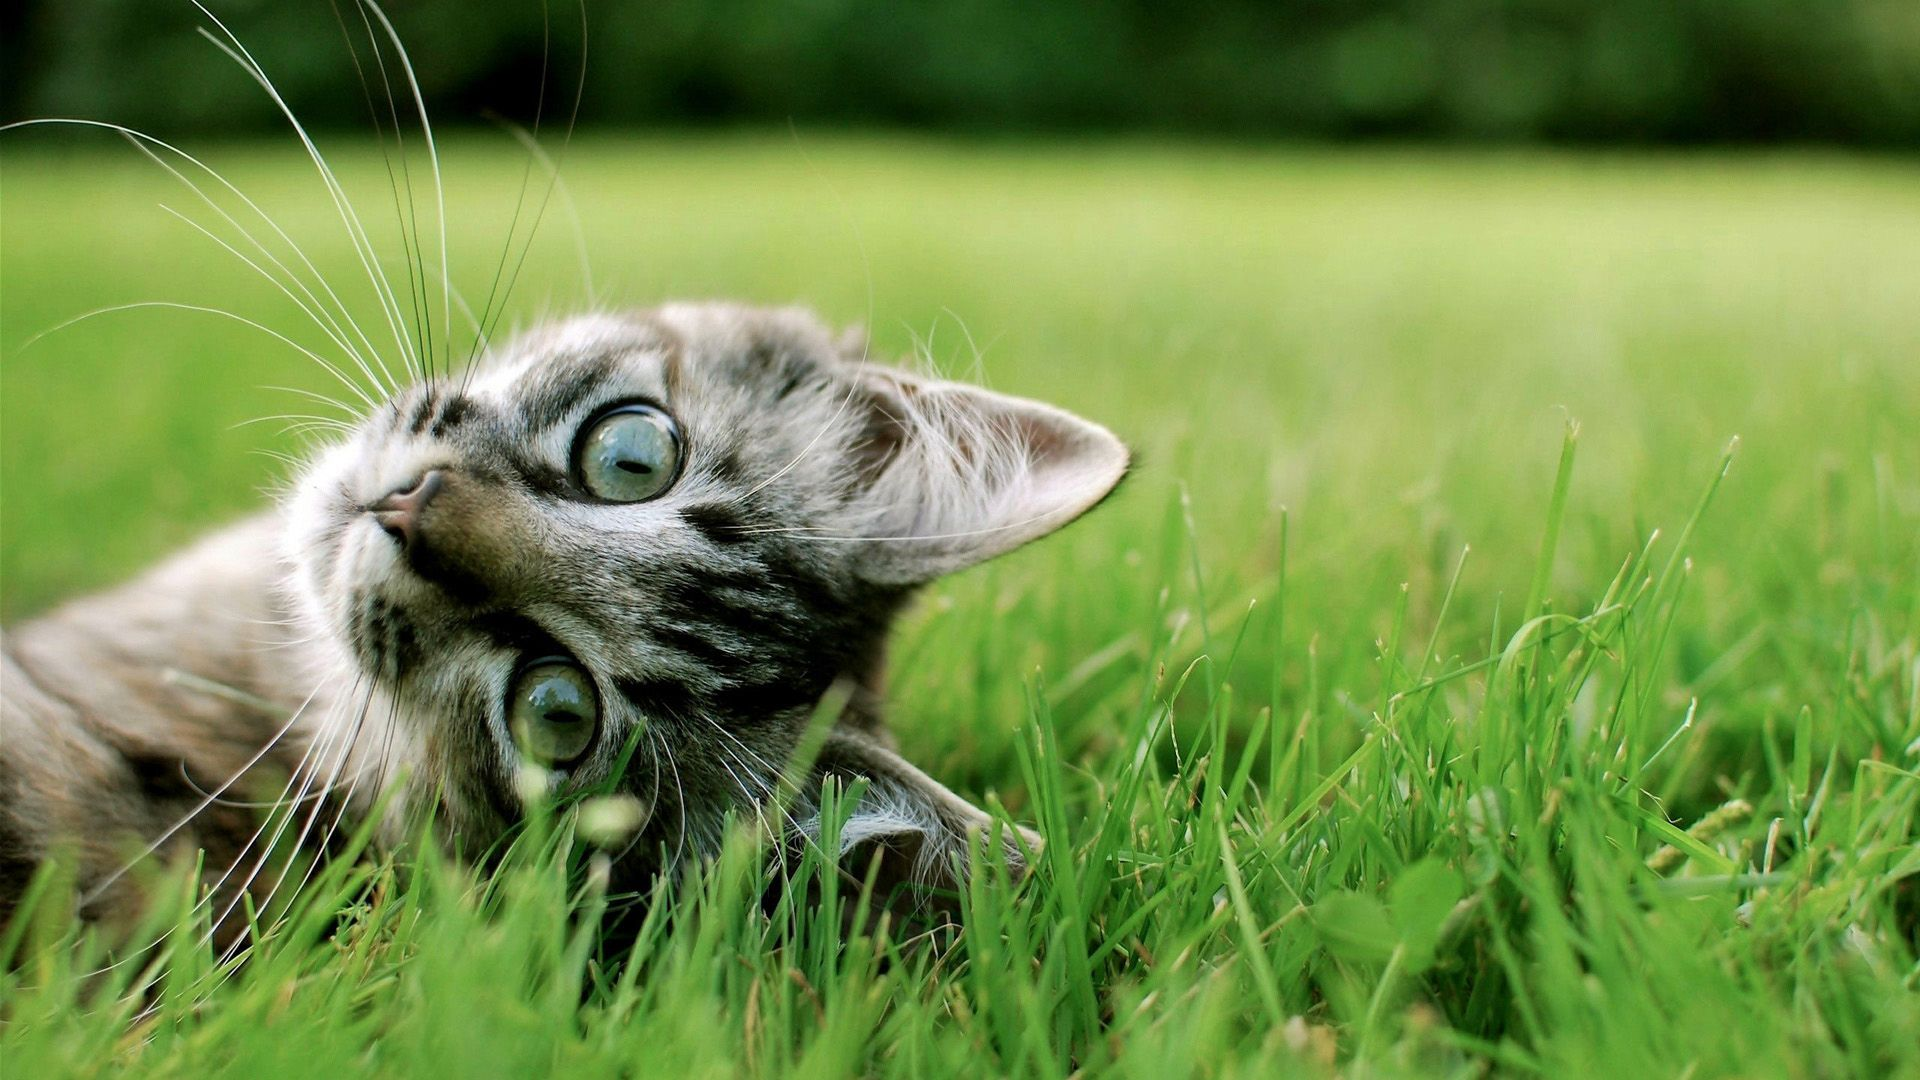 Cute Cat HD Wallpaper Kitten wallpaper, Cute cats, Cats